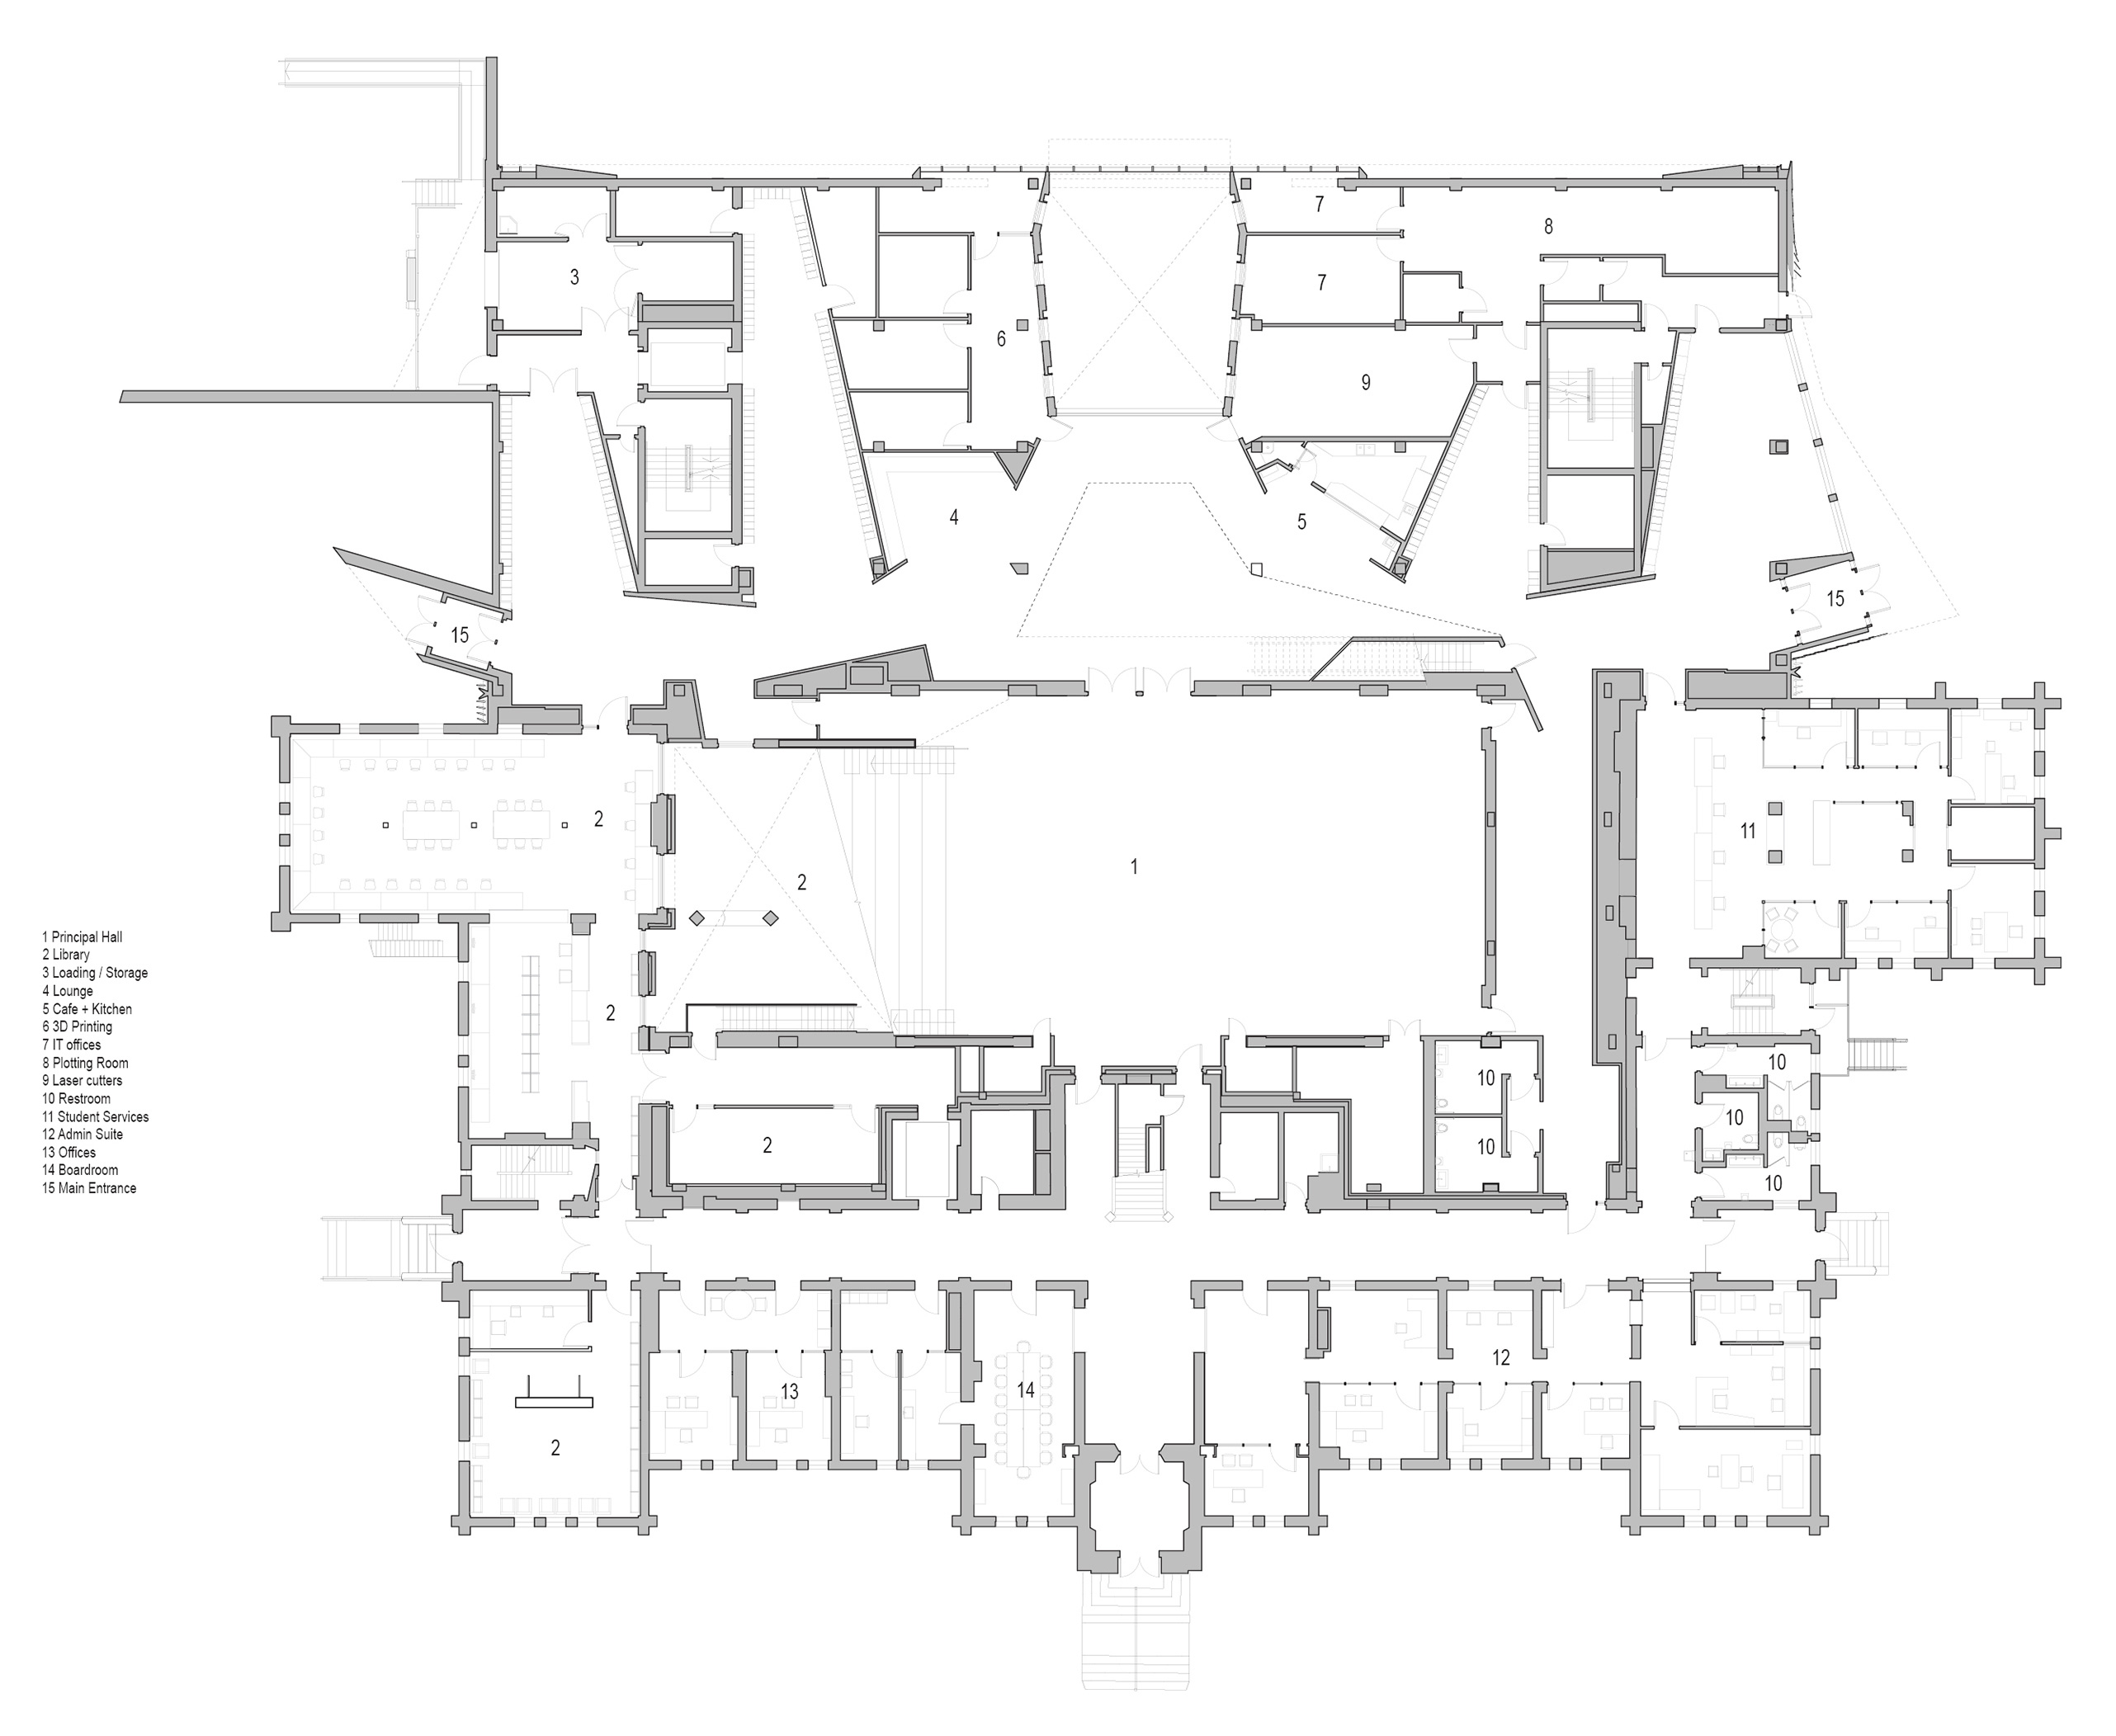 Plan- Level 1 | Daniels Faculty of Architecture | NADAAA architects | Canada |STIRworld